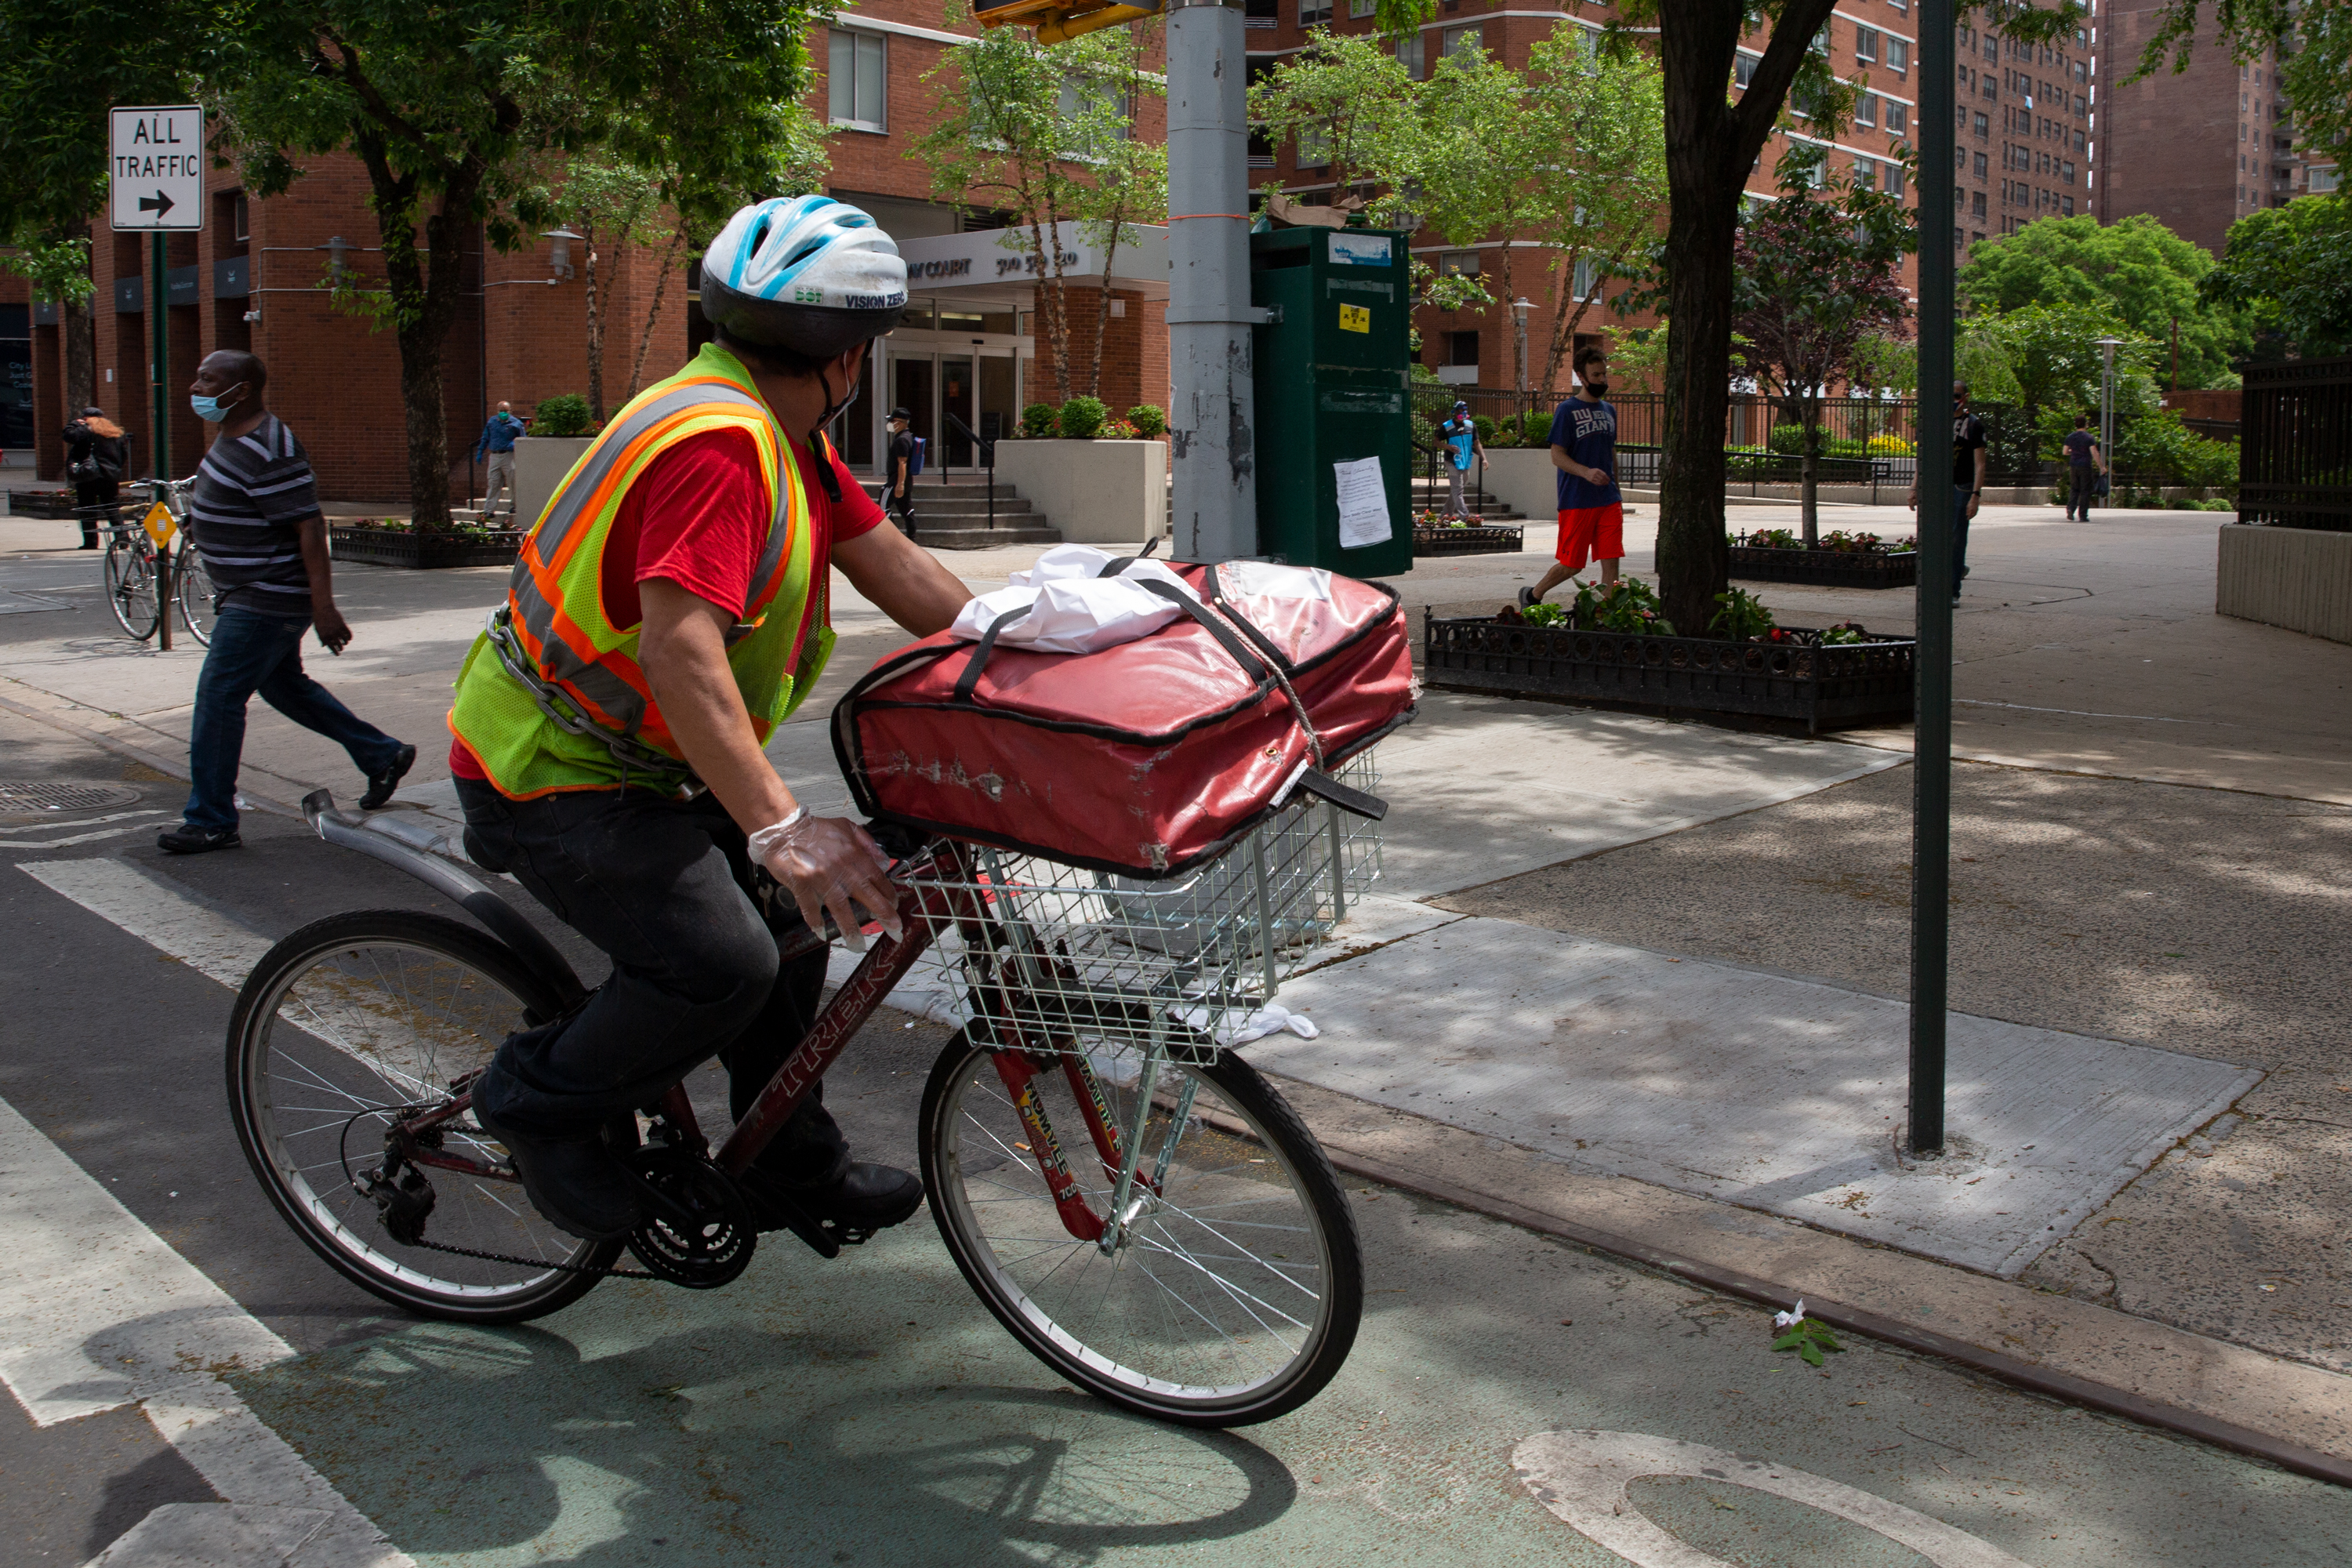 A delivery worker cycles through Kips Bay in Manhattan, June 4, 2020.